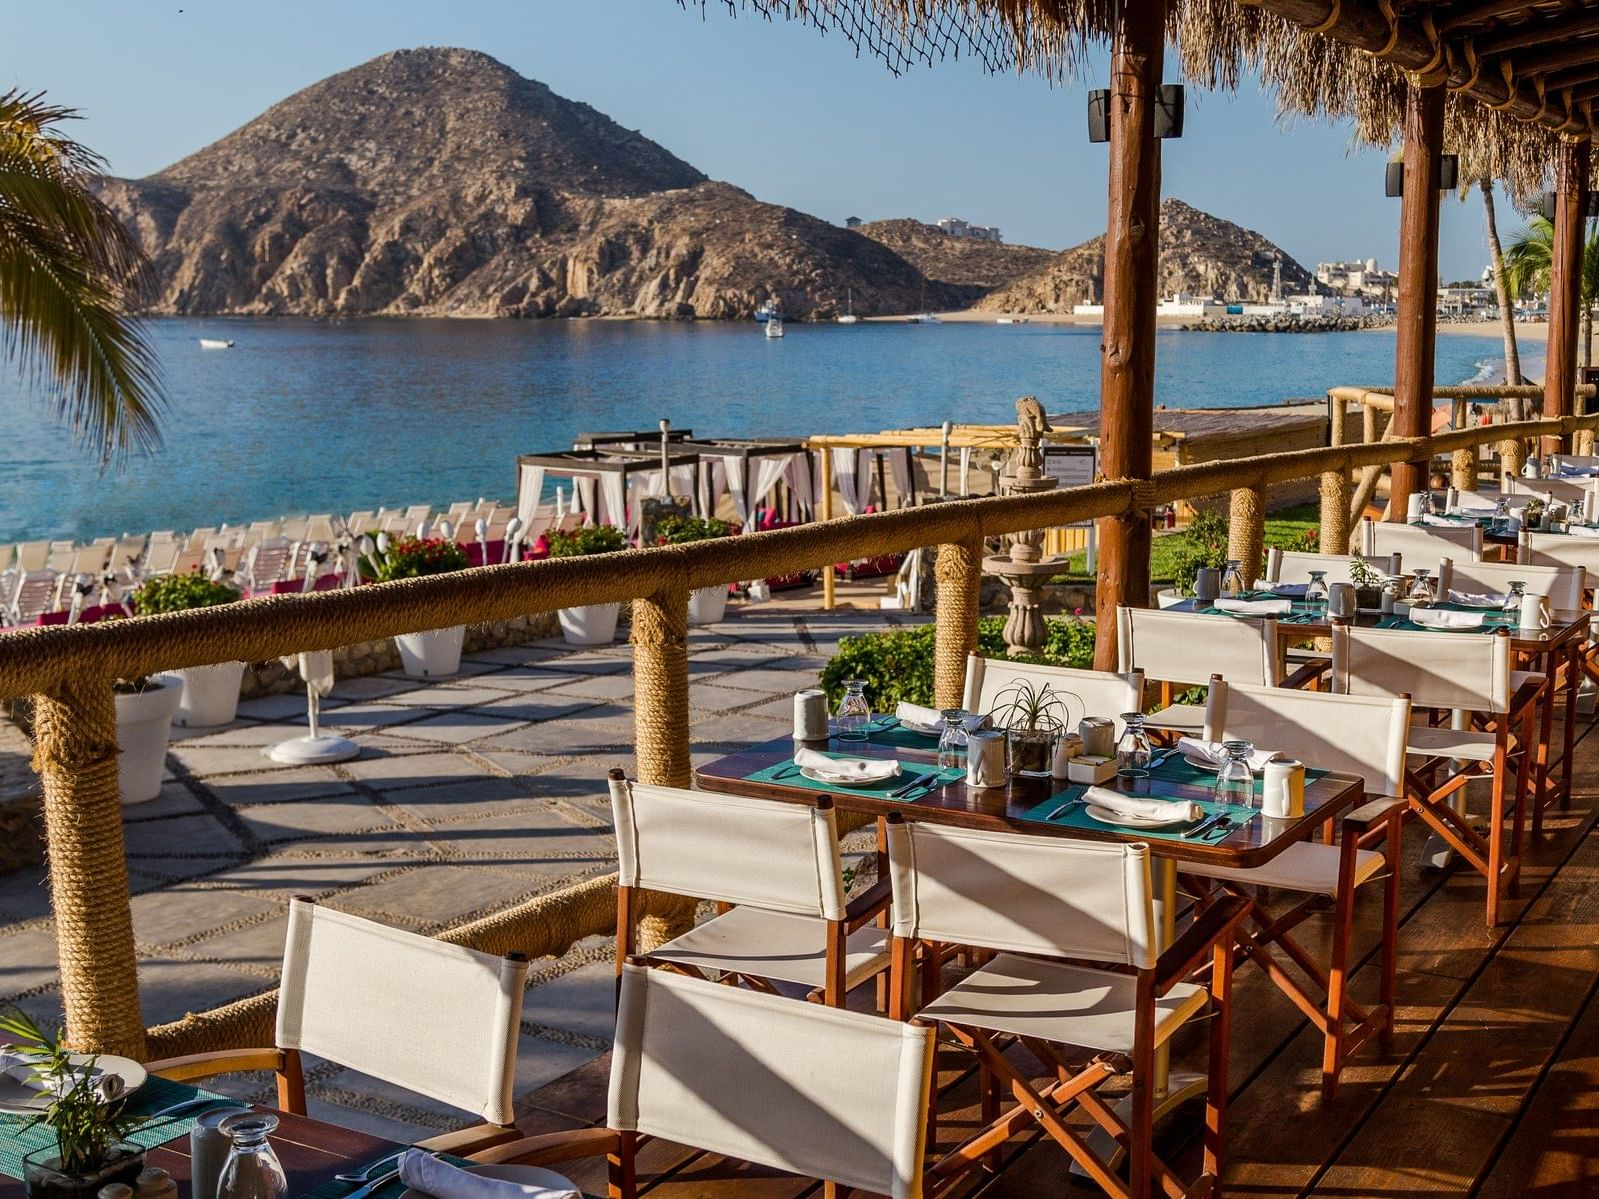 Outdoor seating area at Aleta Restaurant in Cabo Beach Resort